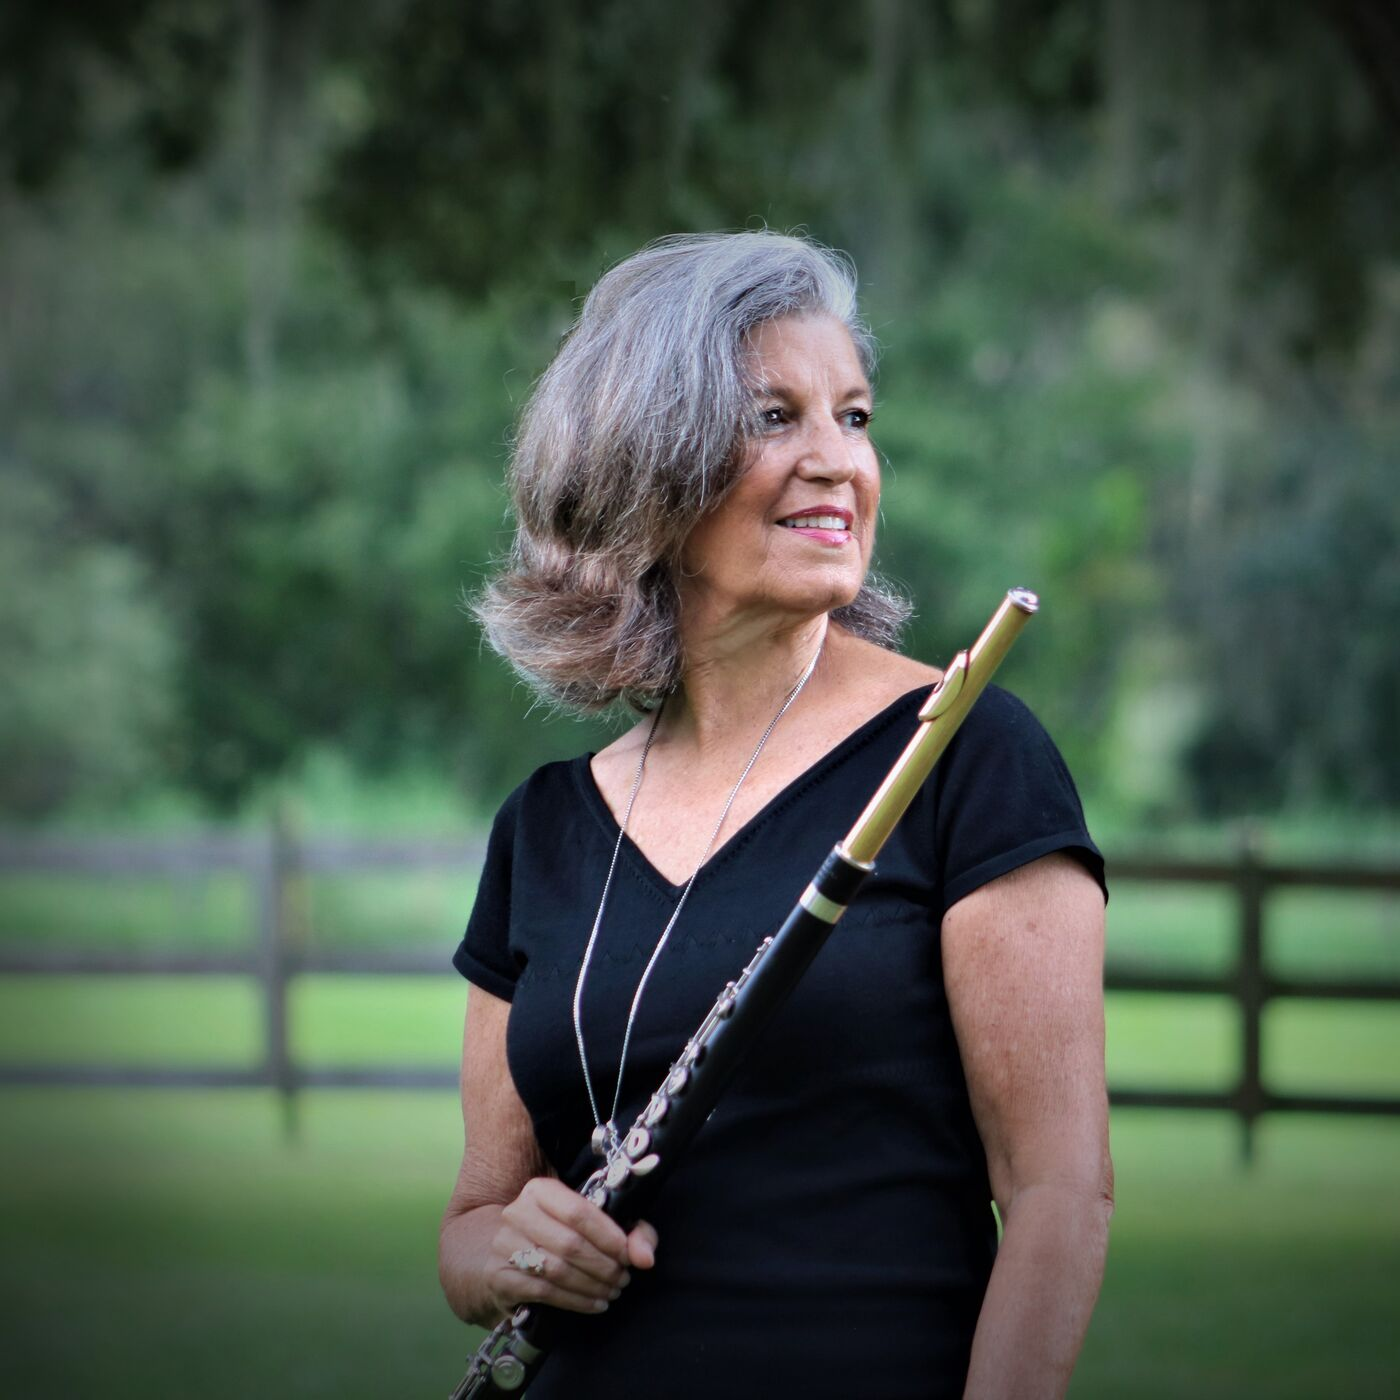 Dr. Jane Hoffman, Principal Flutist for the Pops Orchestra and Instructor of Flute at SCF, Joins the Club